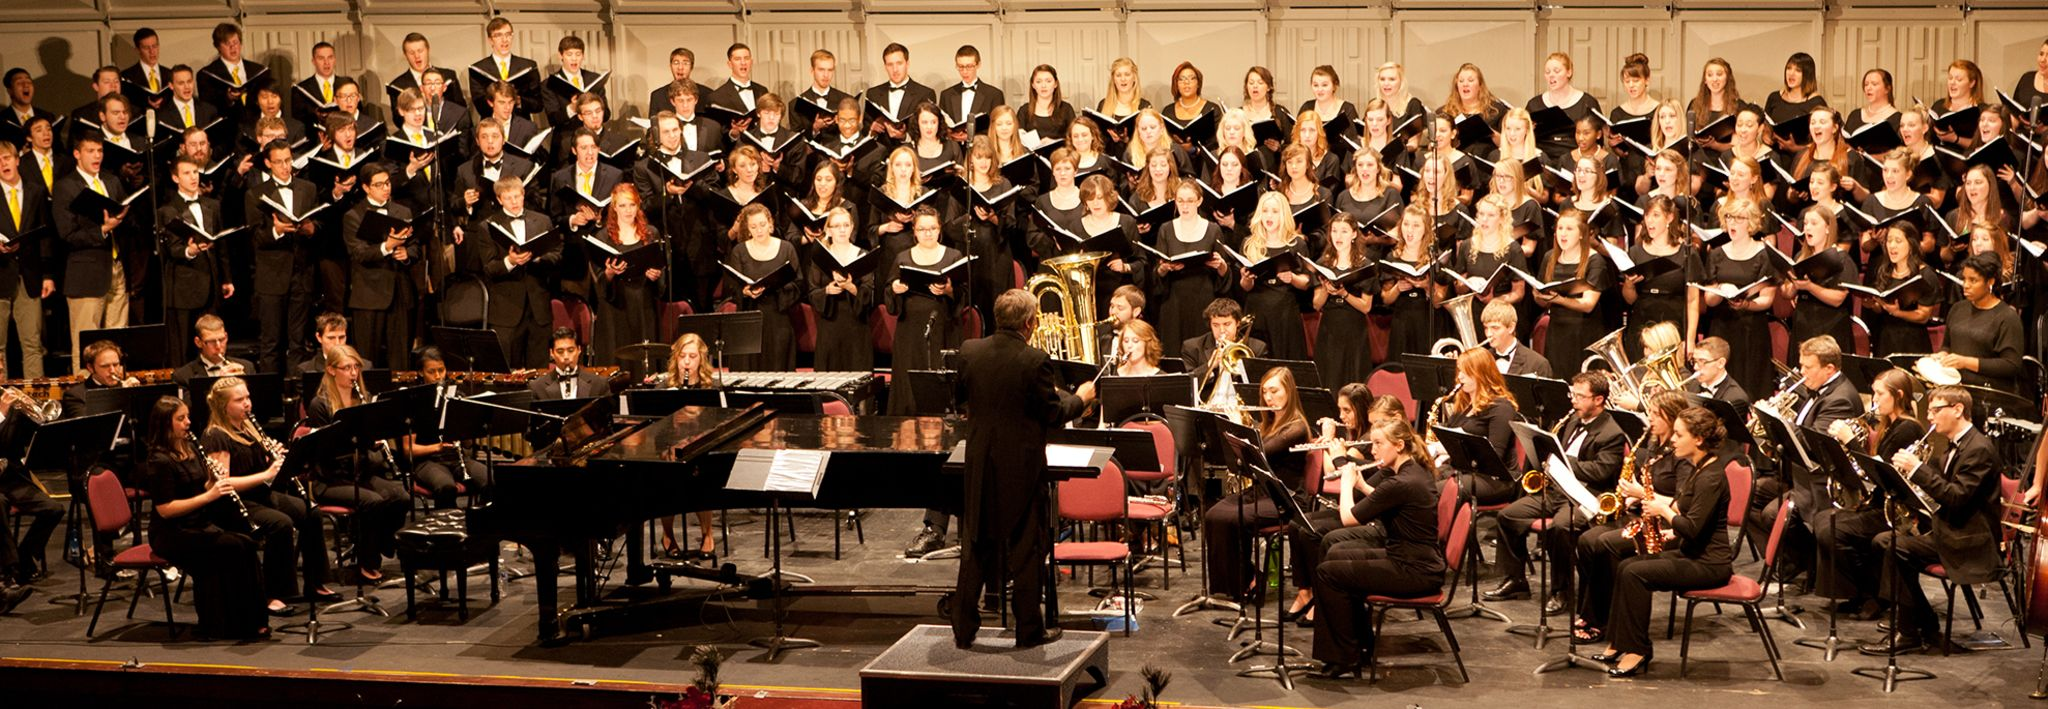 CCU's School of Music performing in a concert.